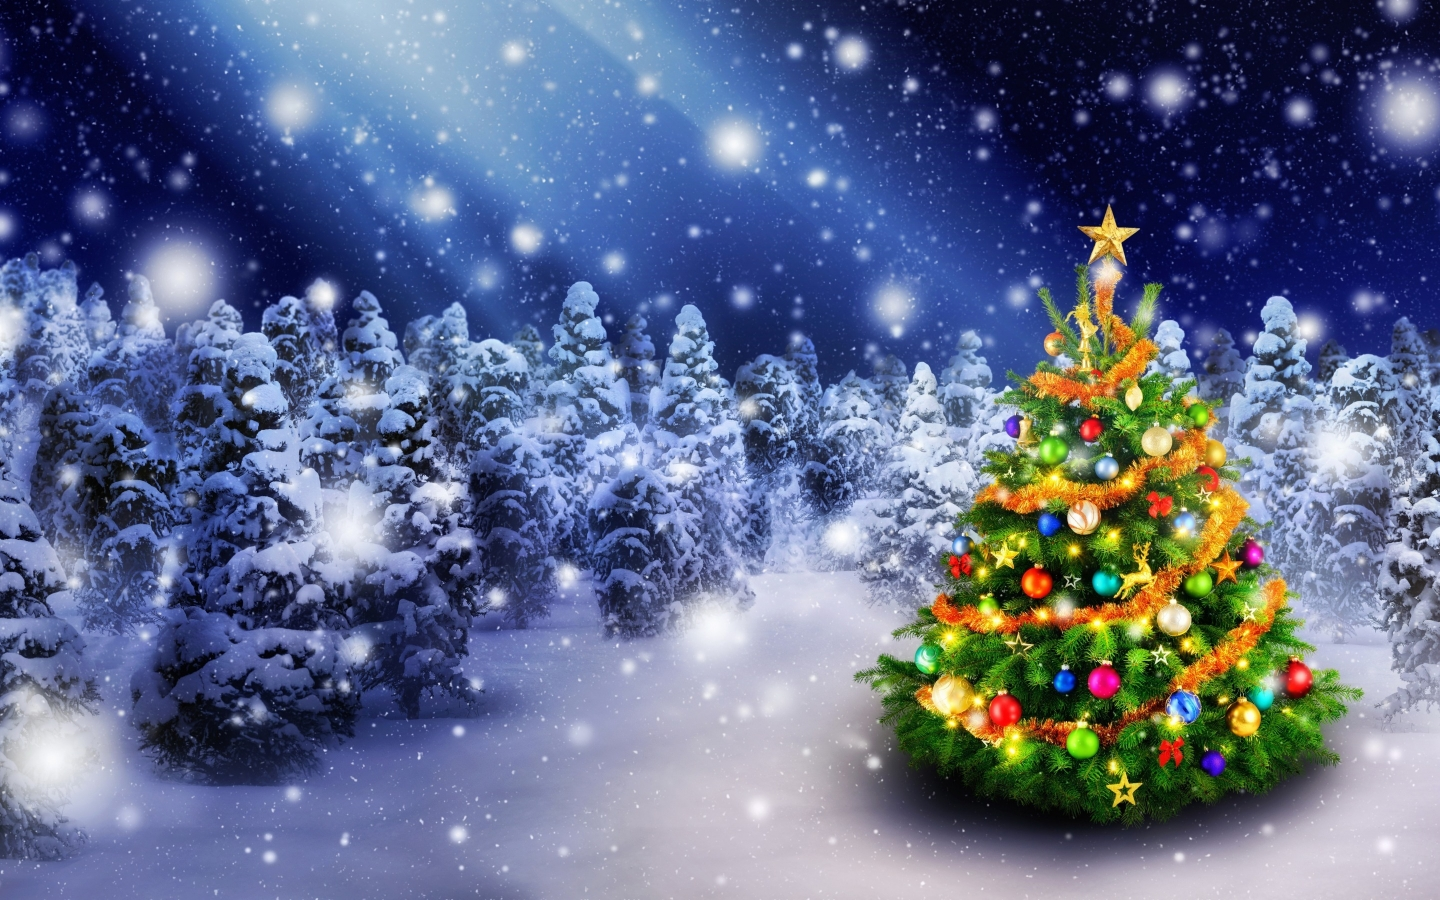 2016 Christmas Tree for 1440 x 900 widescreen resolution